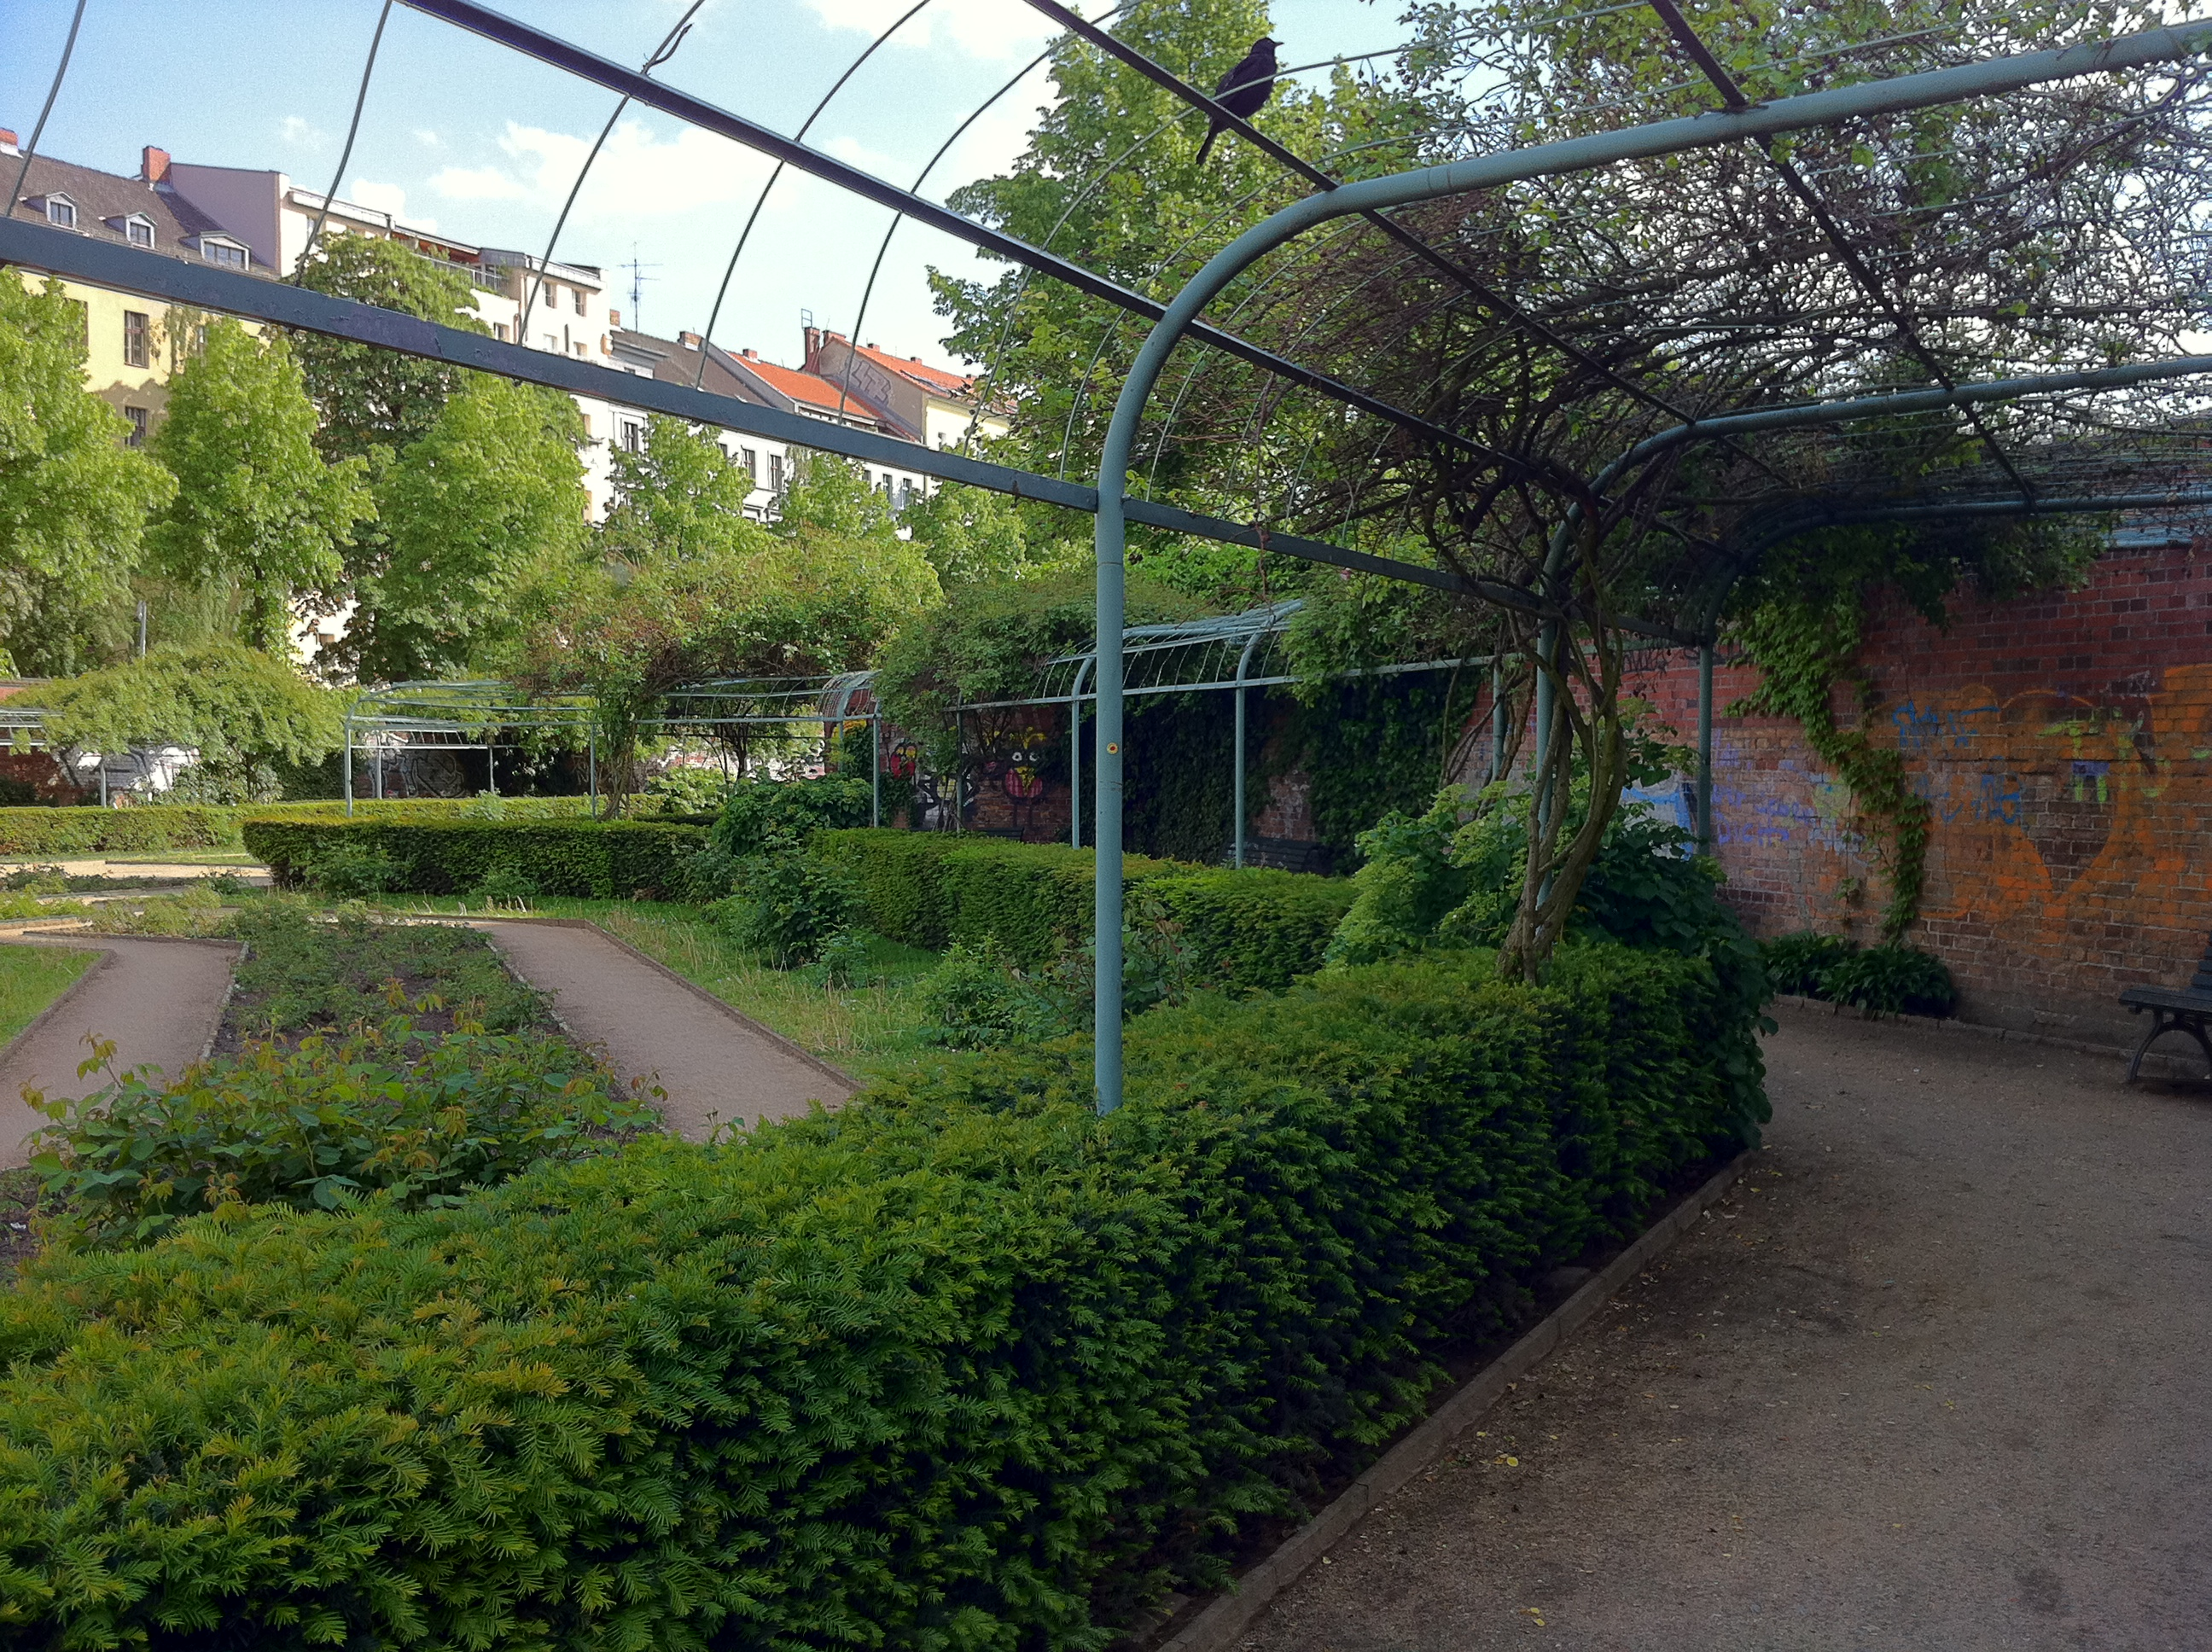 A garden walkway in Berlin.